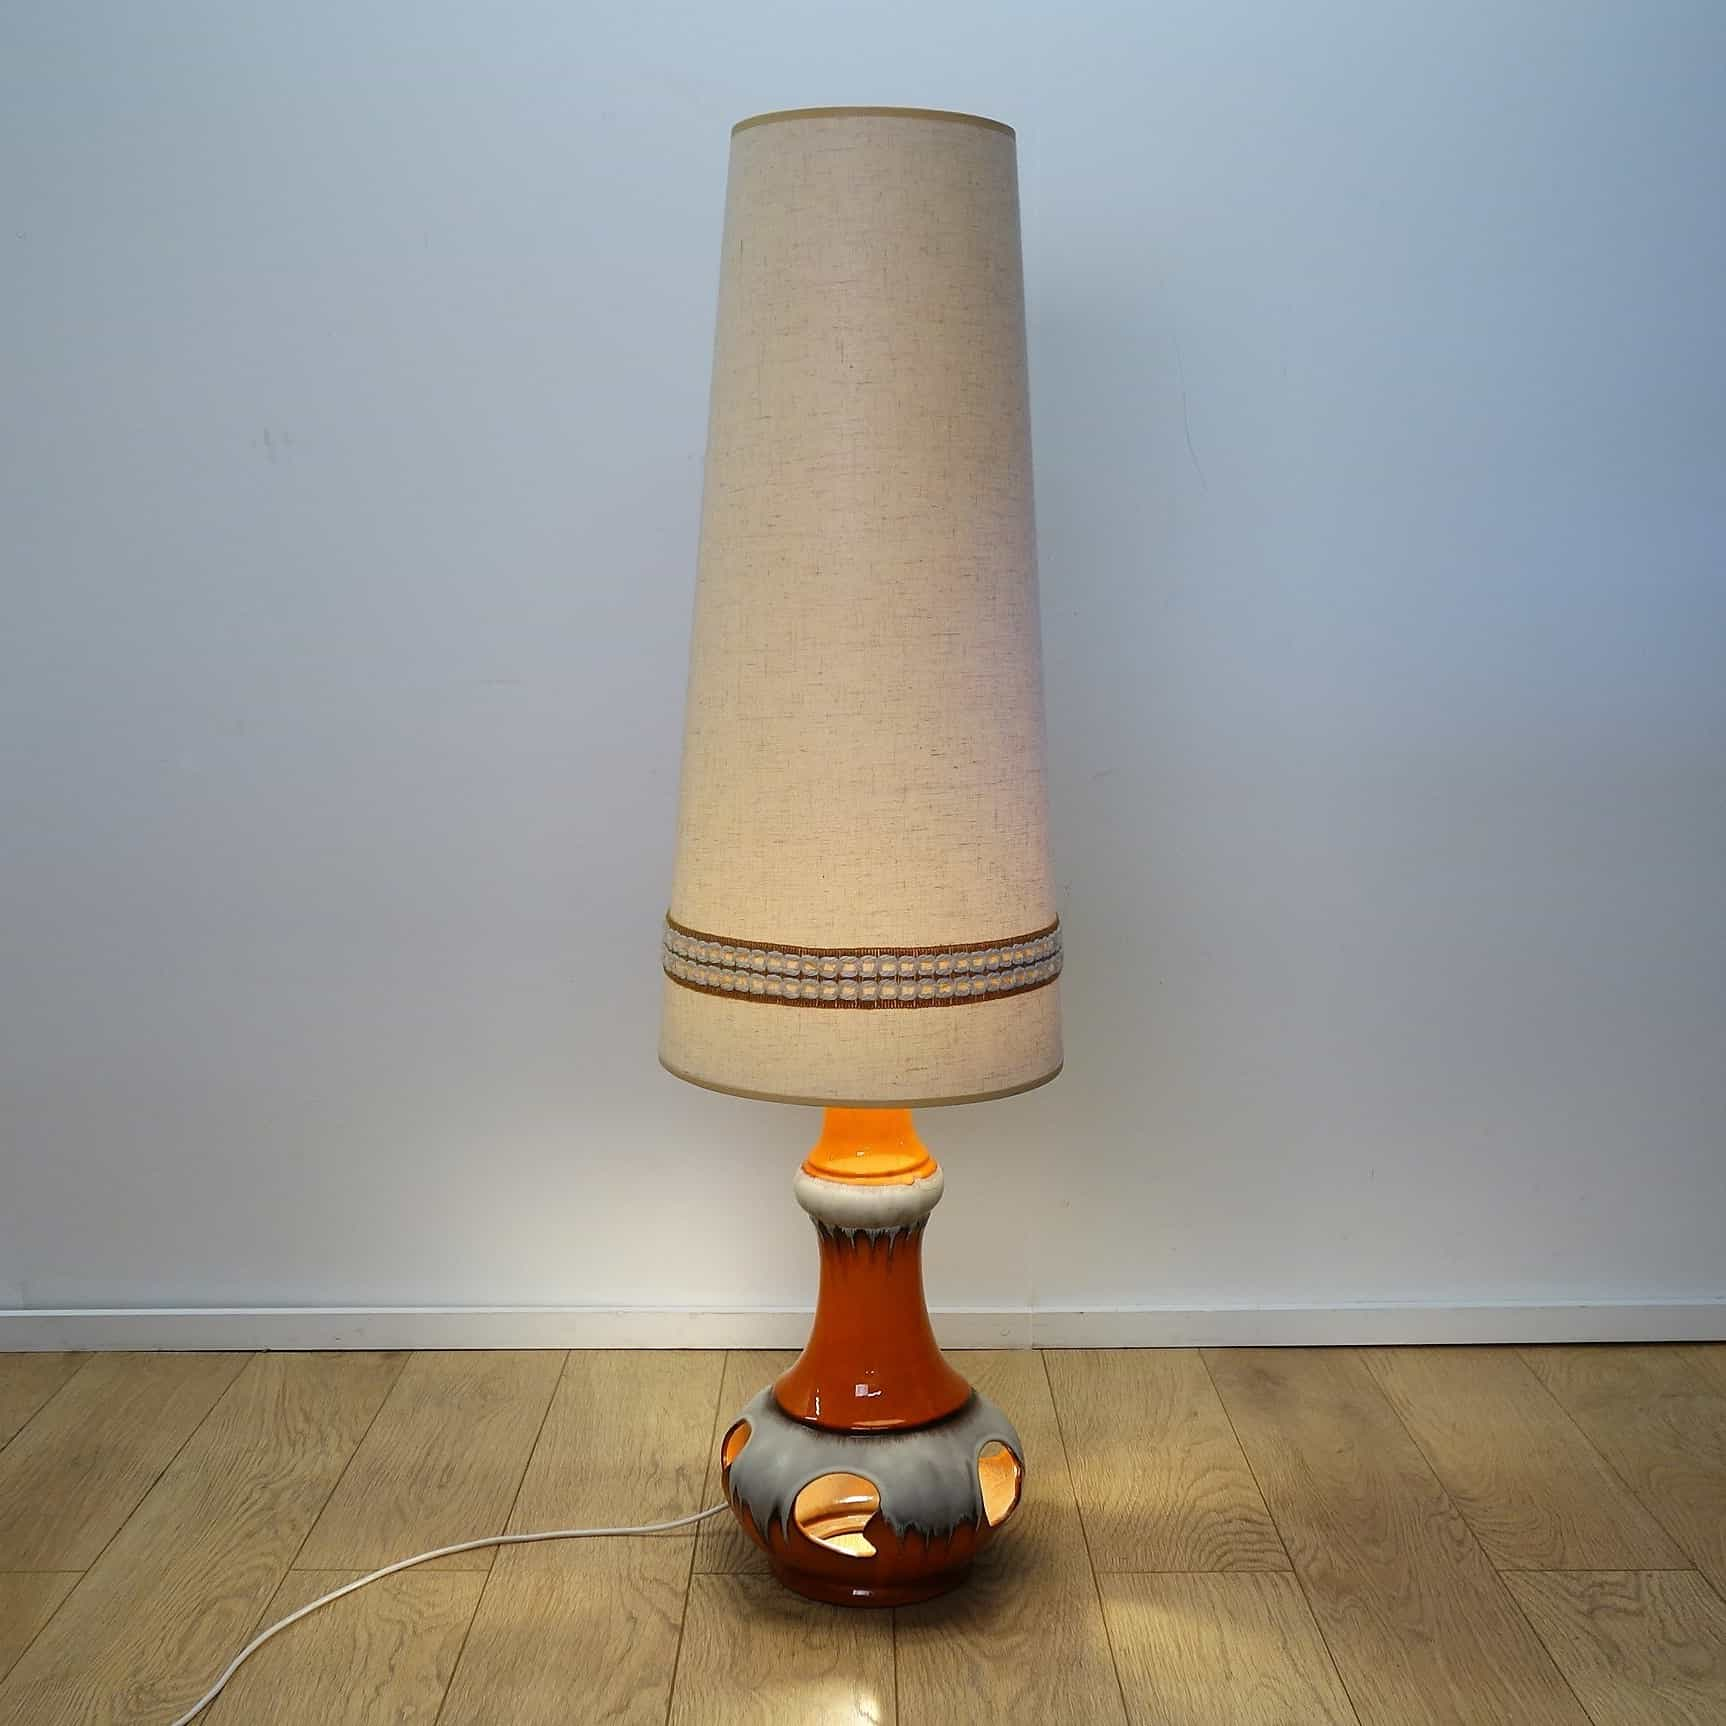 1970s West German orange ceramic floor lamp